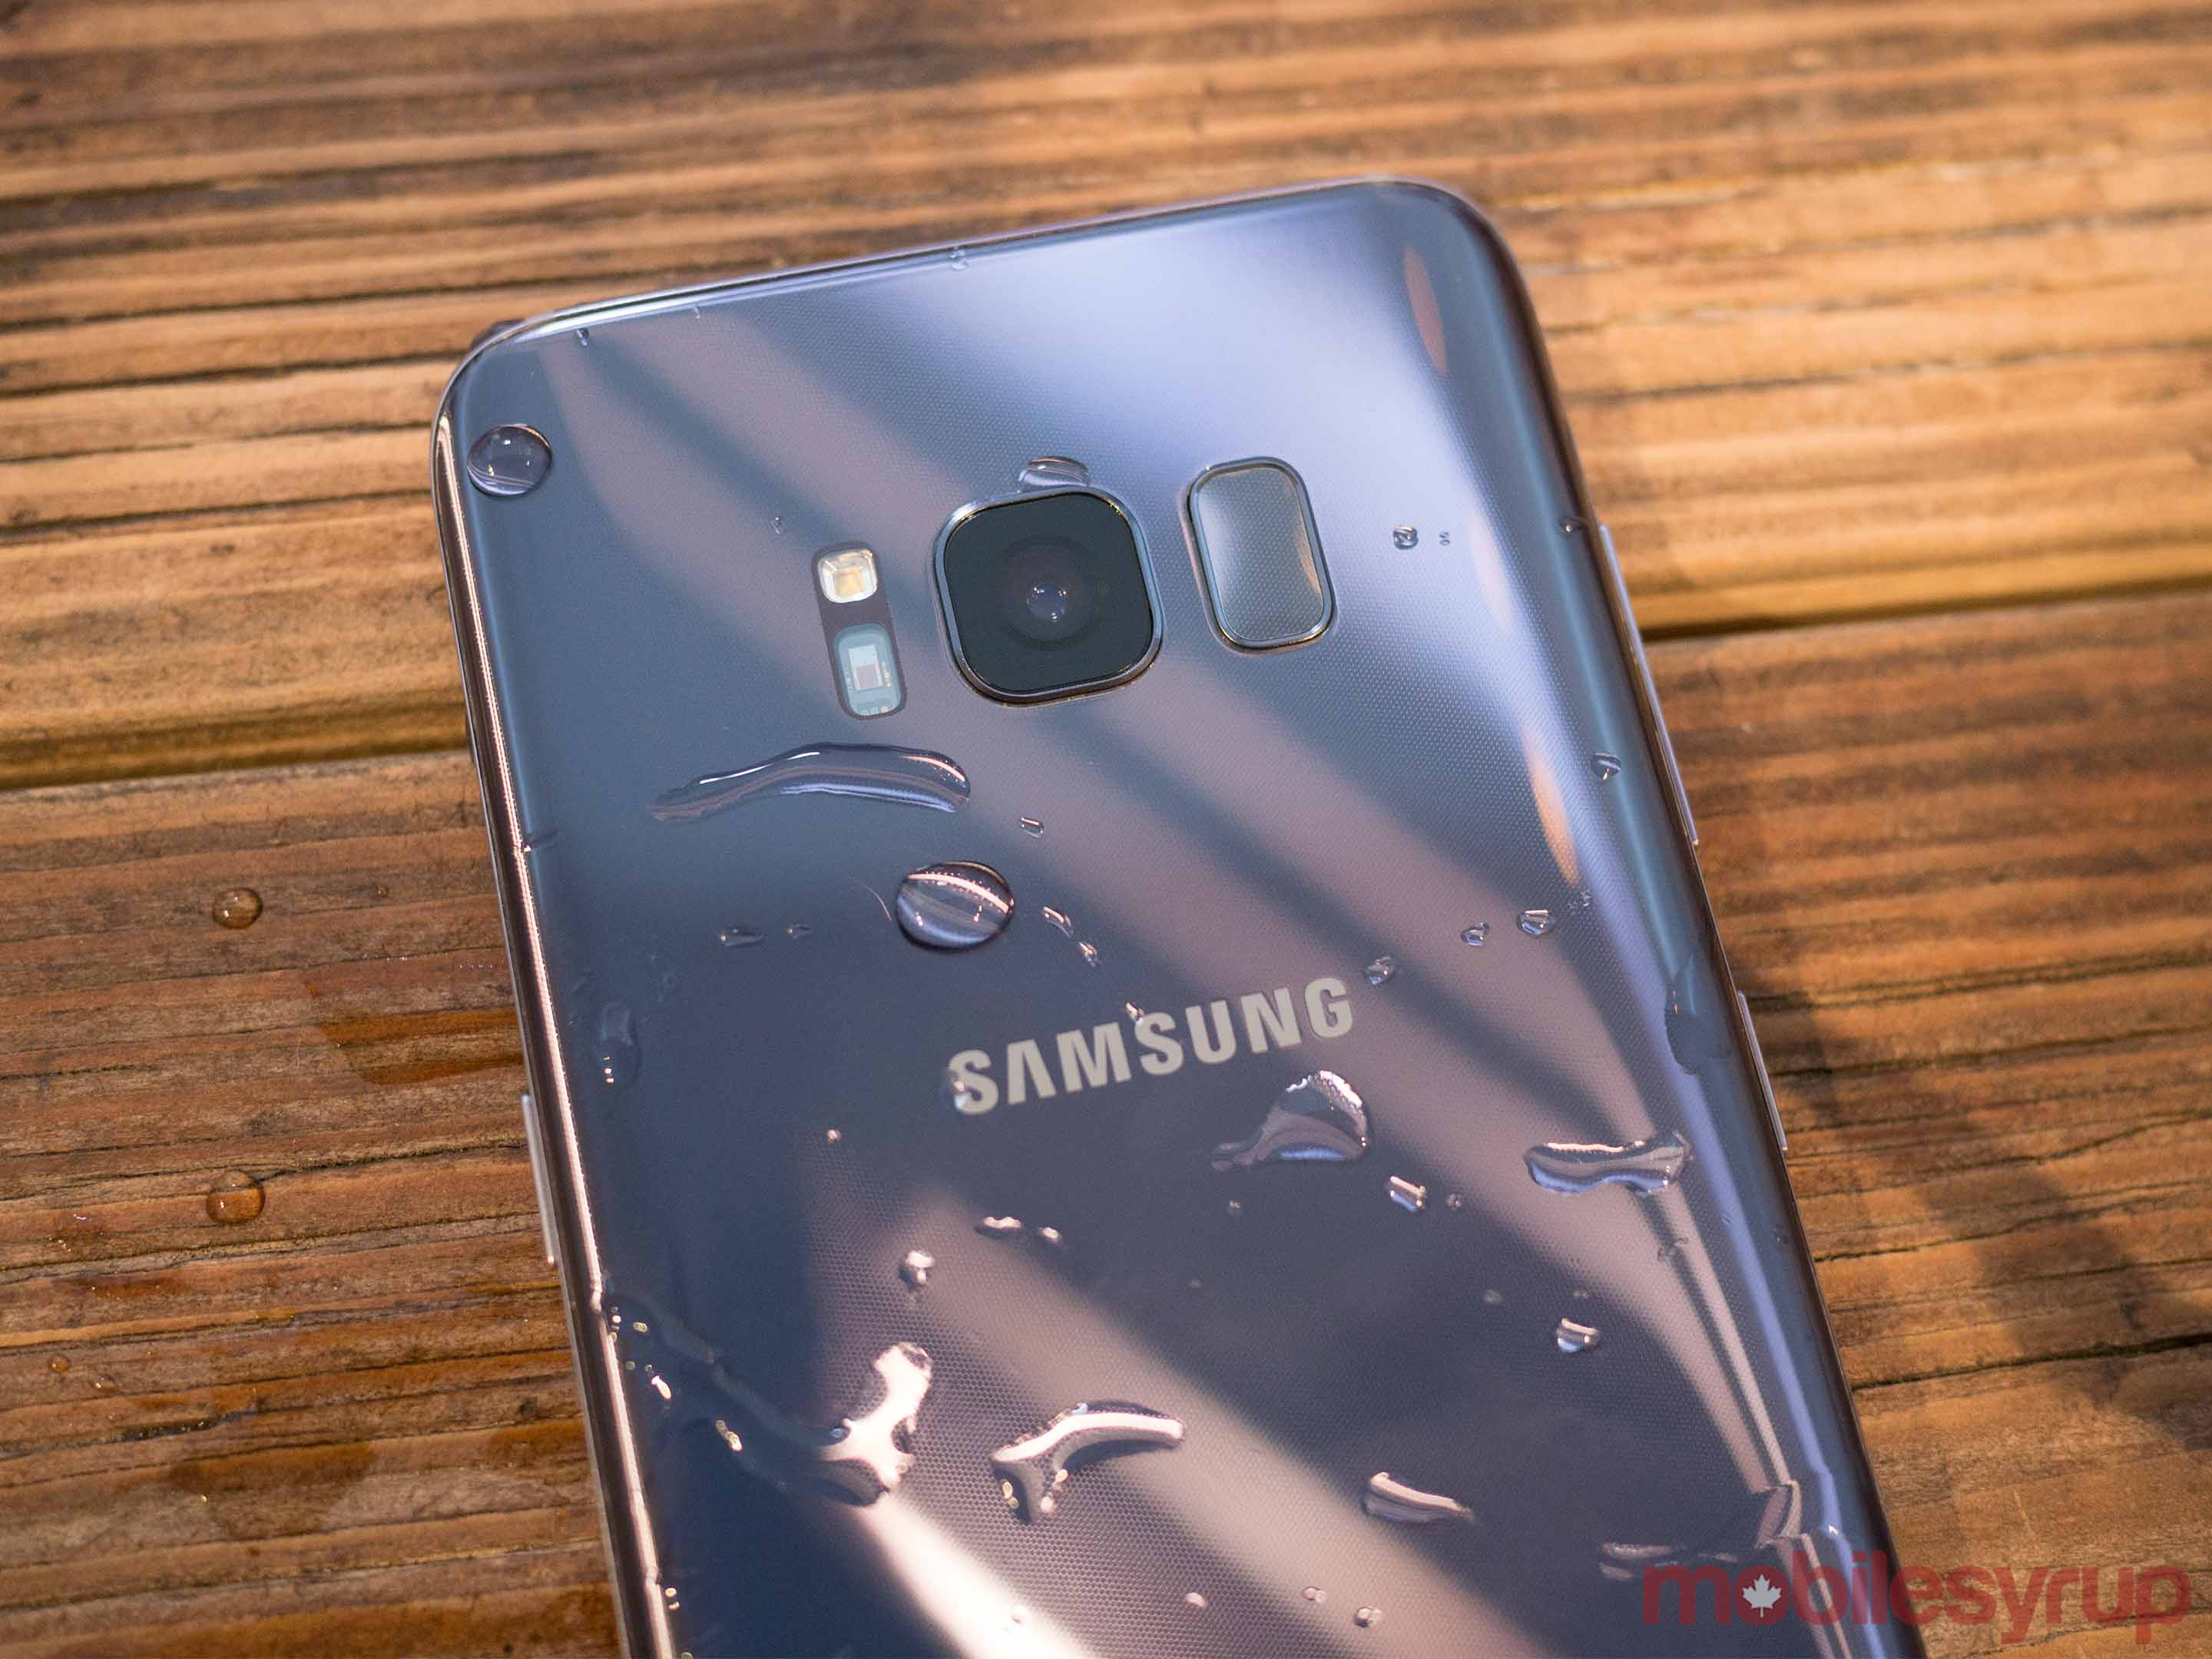 S8 in water